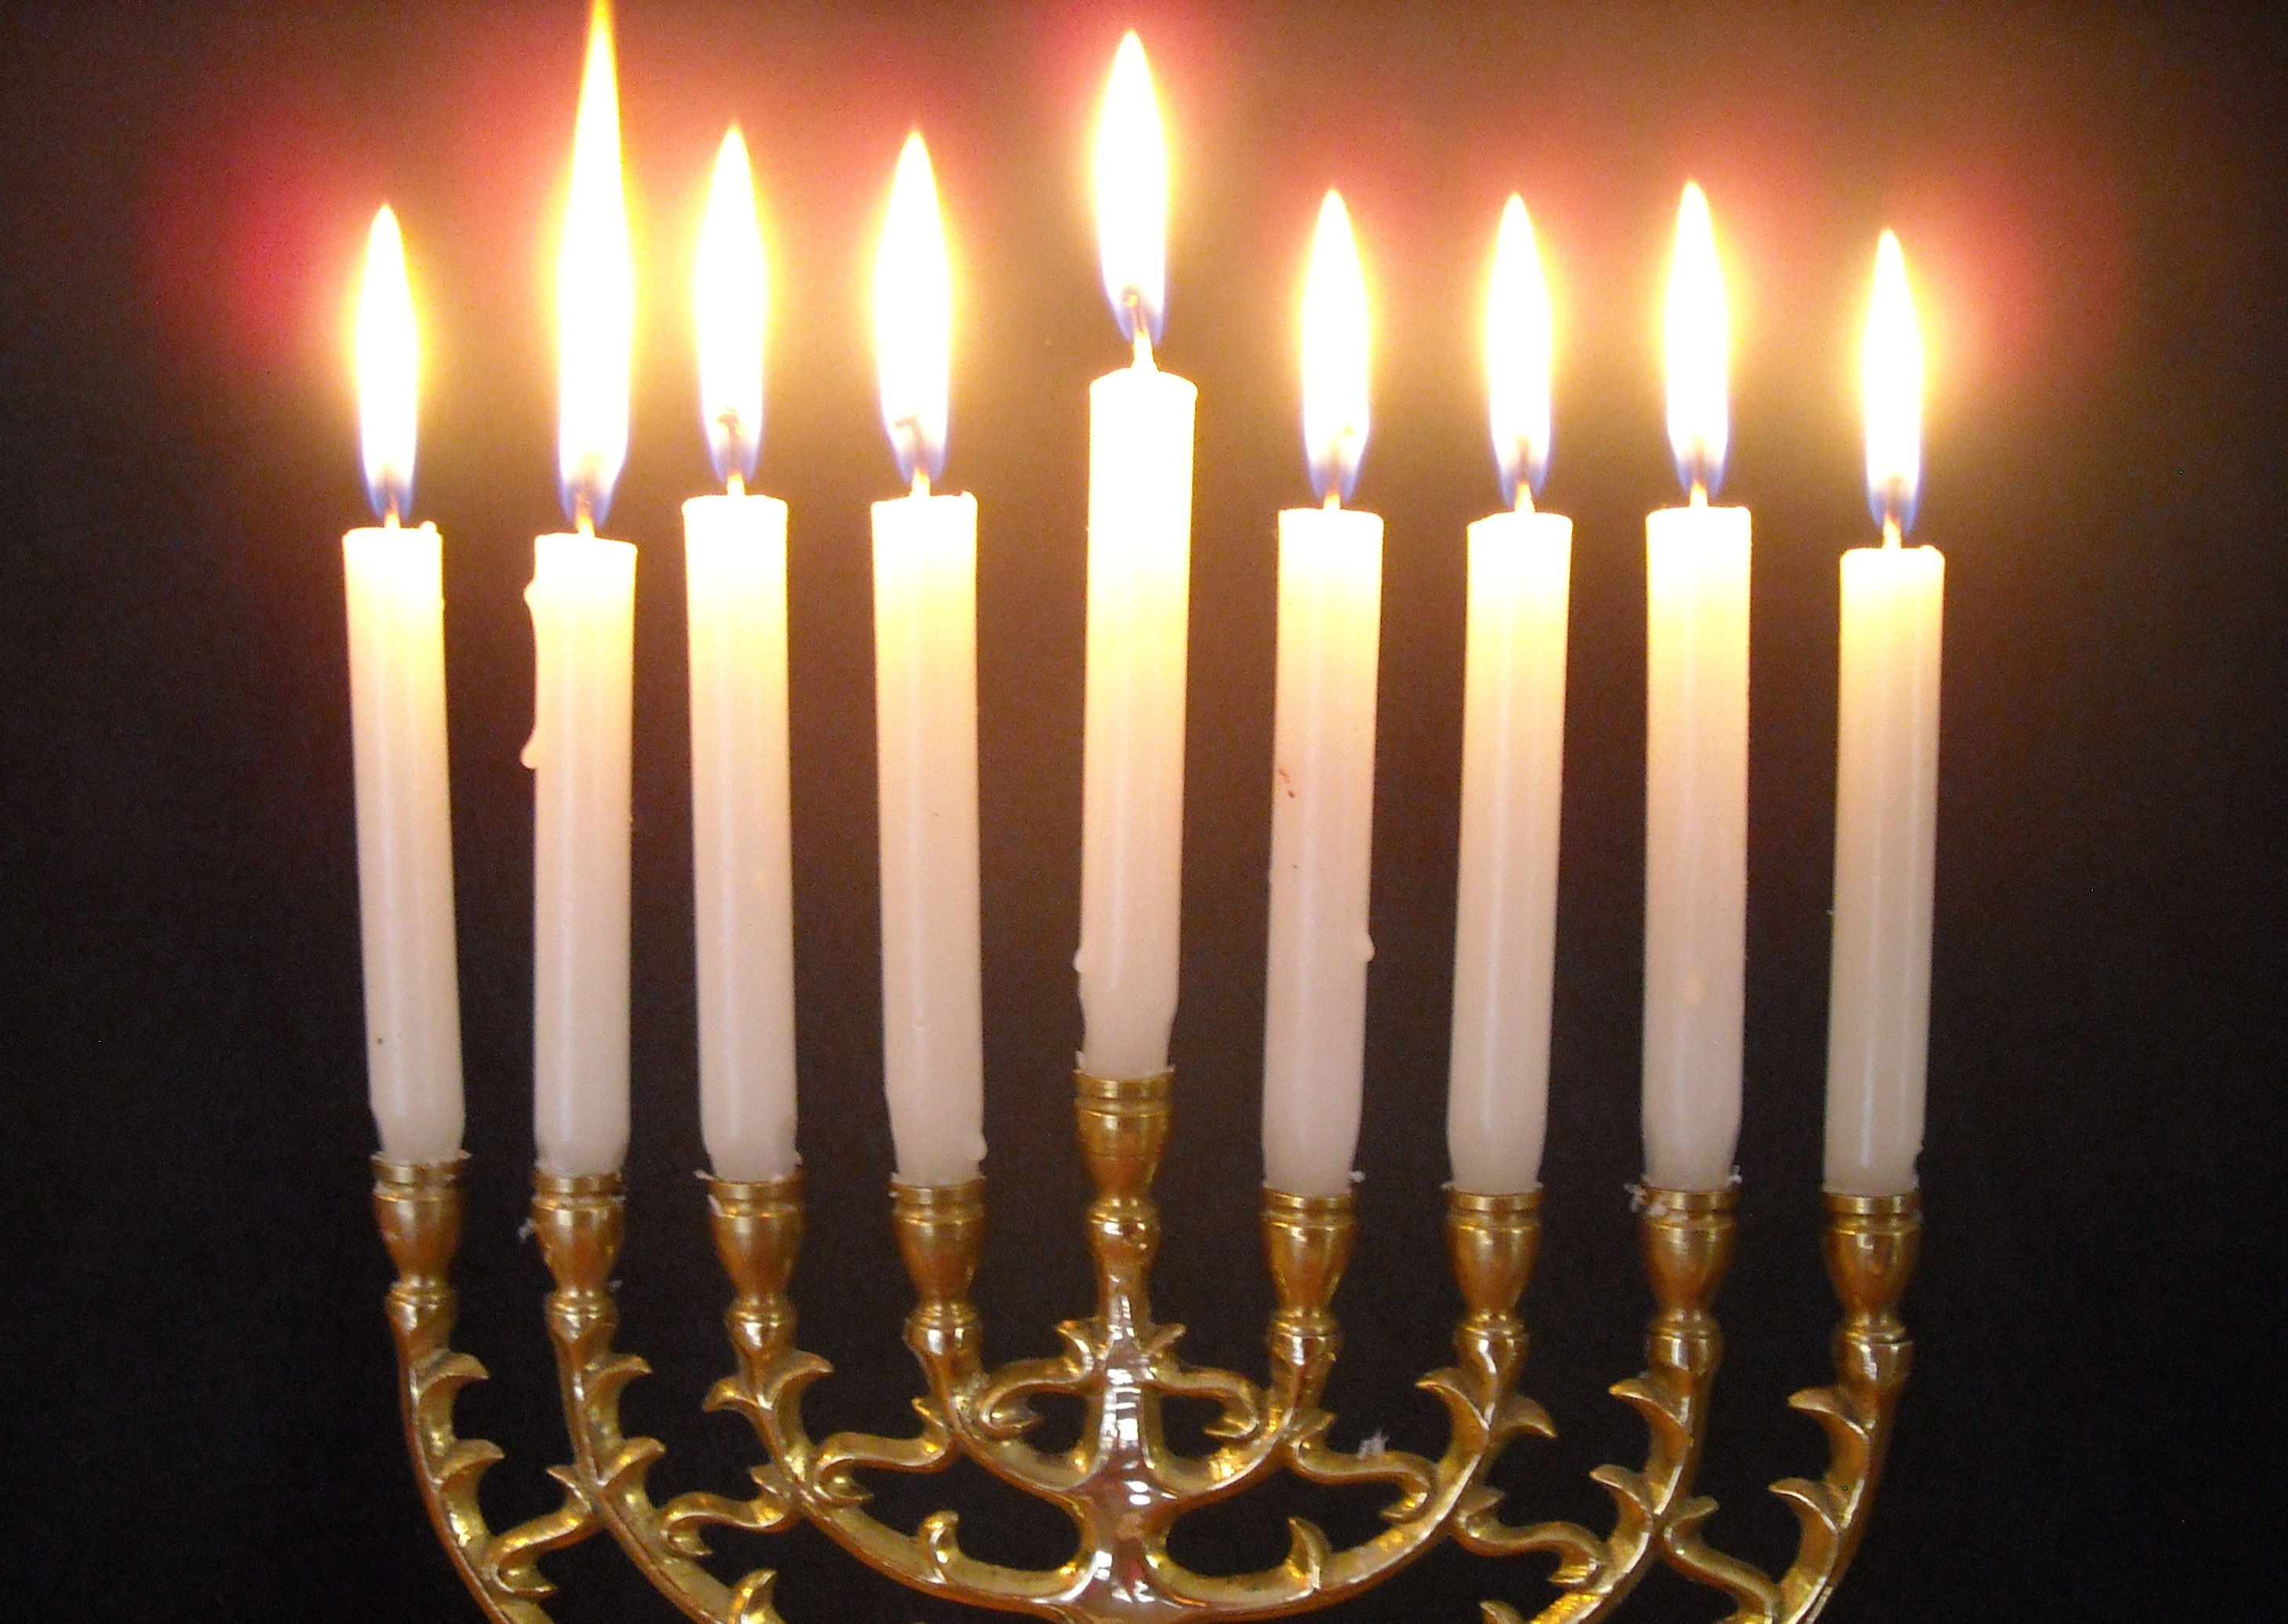 Why I'm Celebrating Hanukkah This Christmas